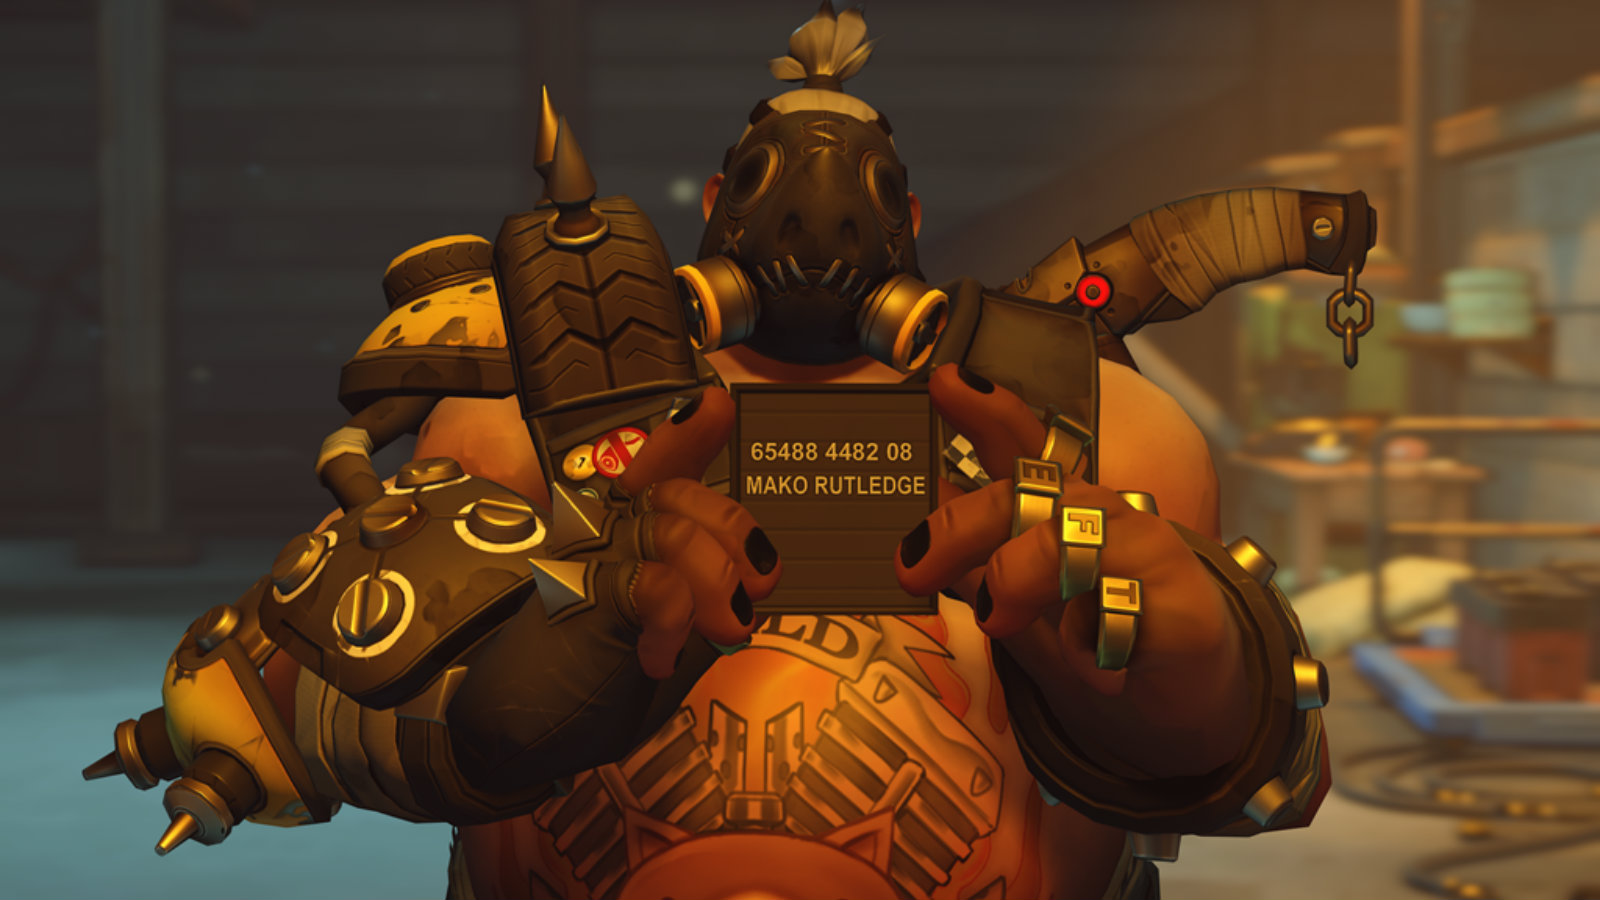 Roadhog has been nerfed